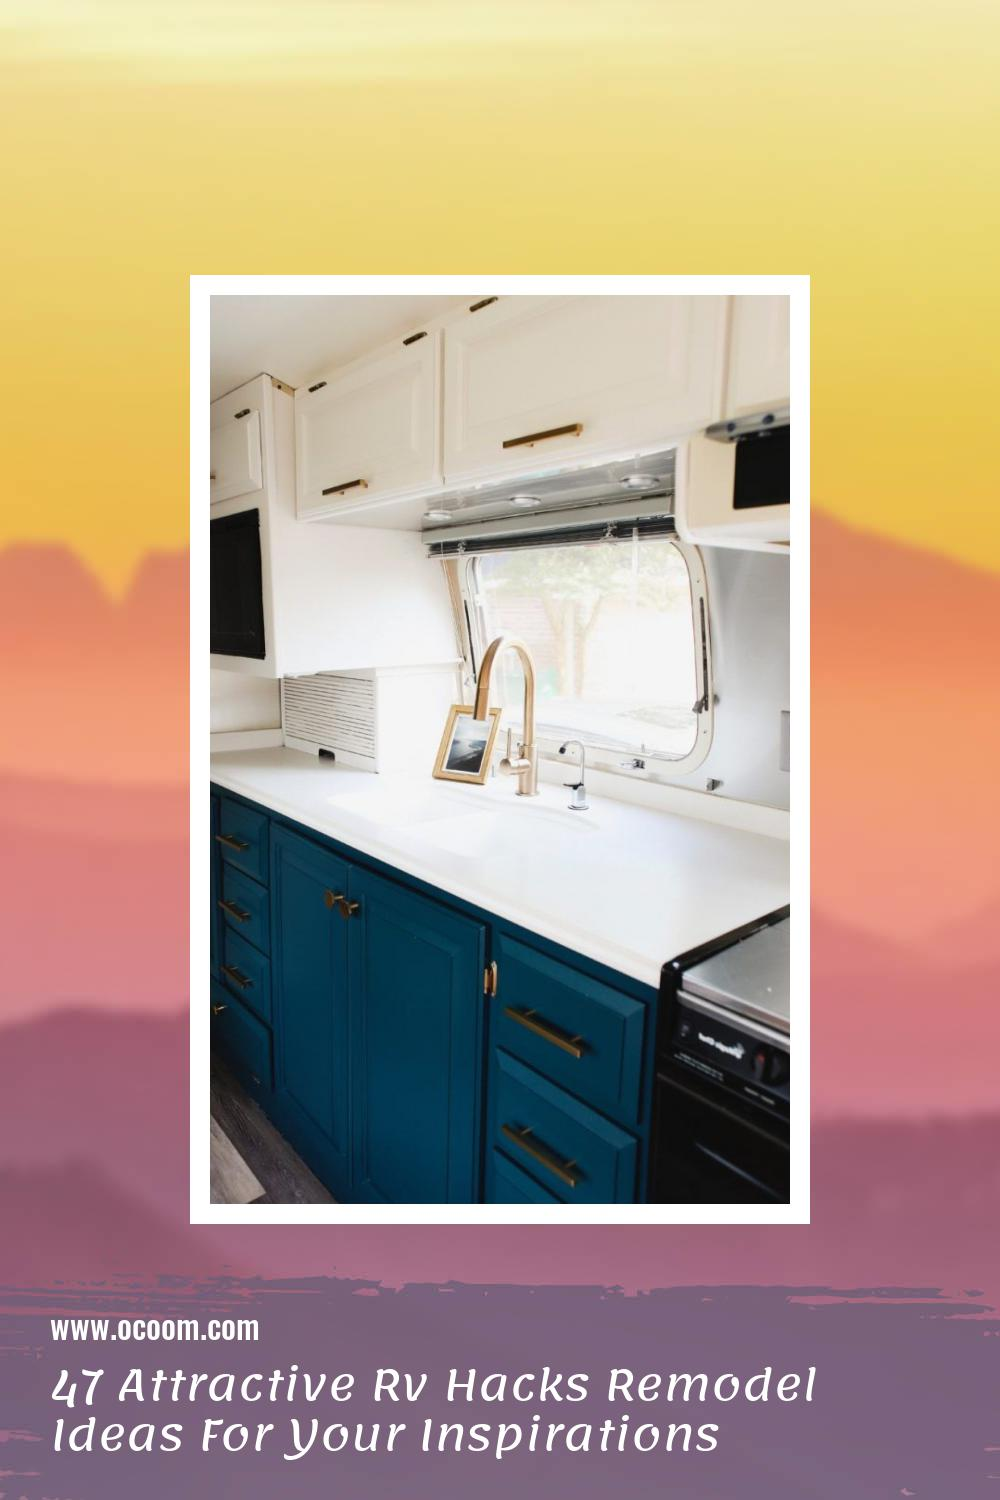 47 Attractive Rv Hacks Remodel Ideas For Your Inspirations 17